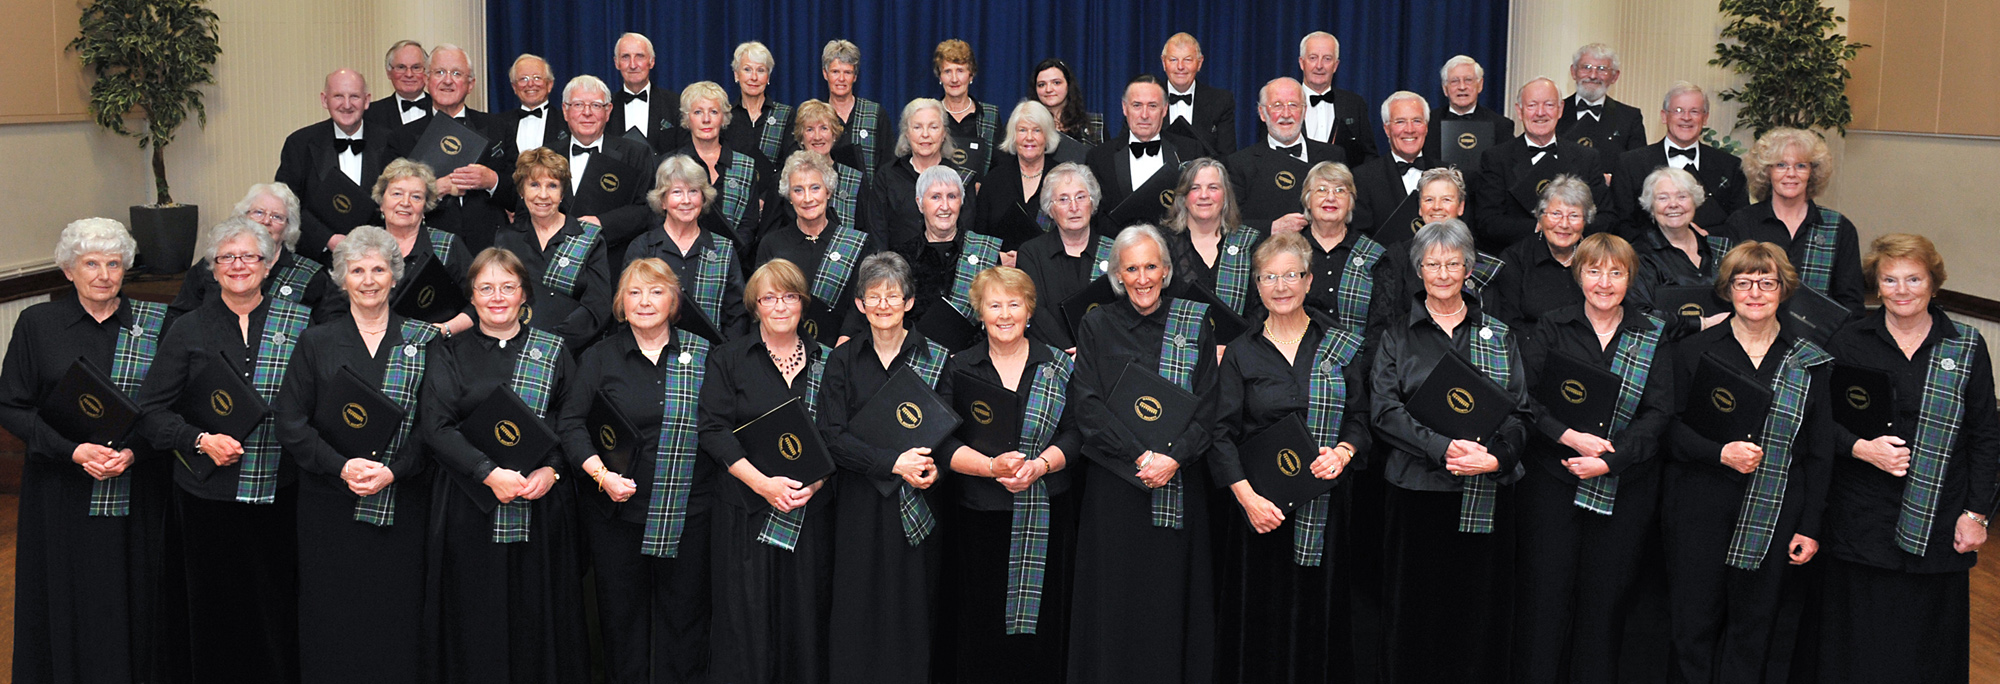 Wadebridge Choral Society members.